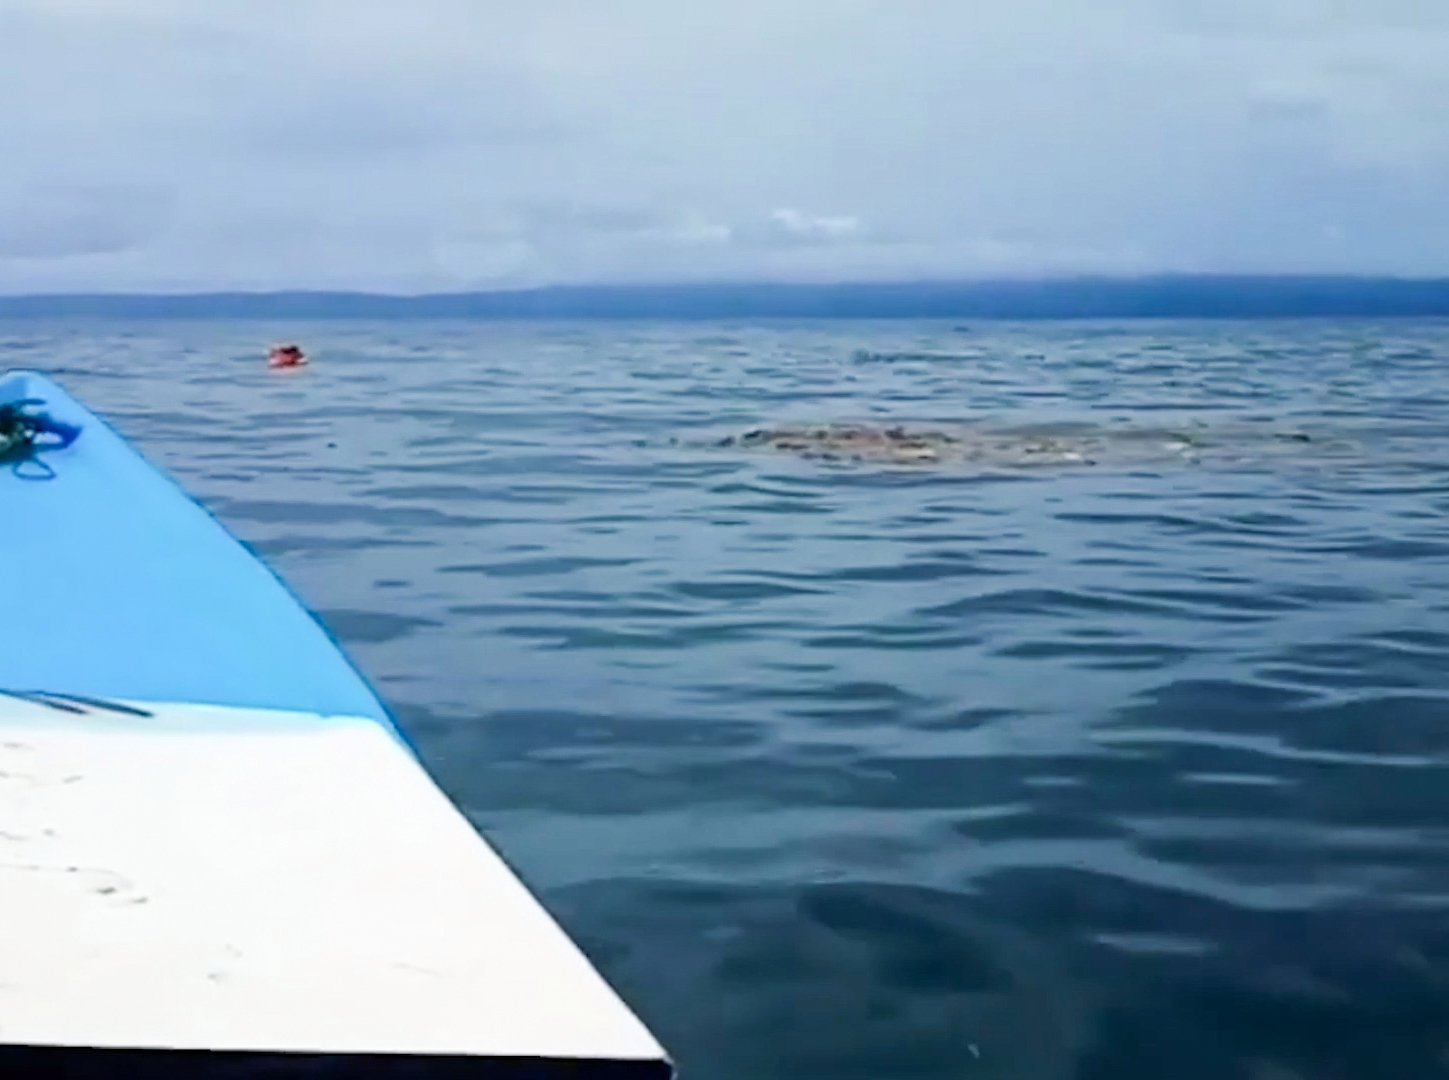 His distinctive orange-coloured box was spotted by the rescue team off the coast in North Maluku province, Indonesia